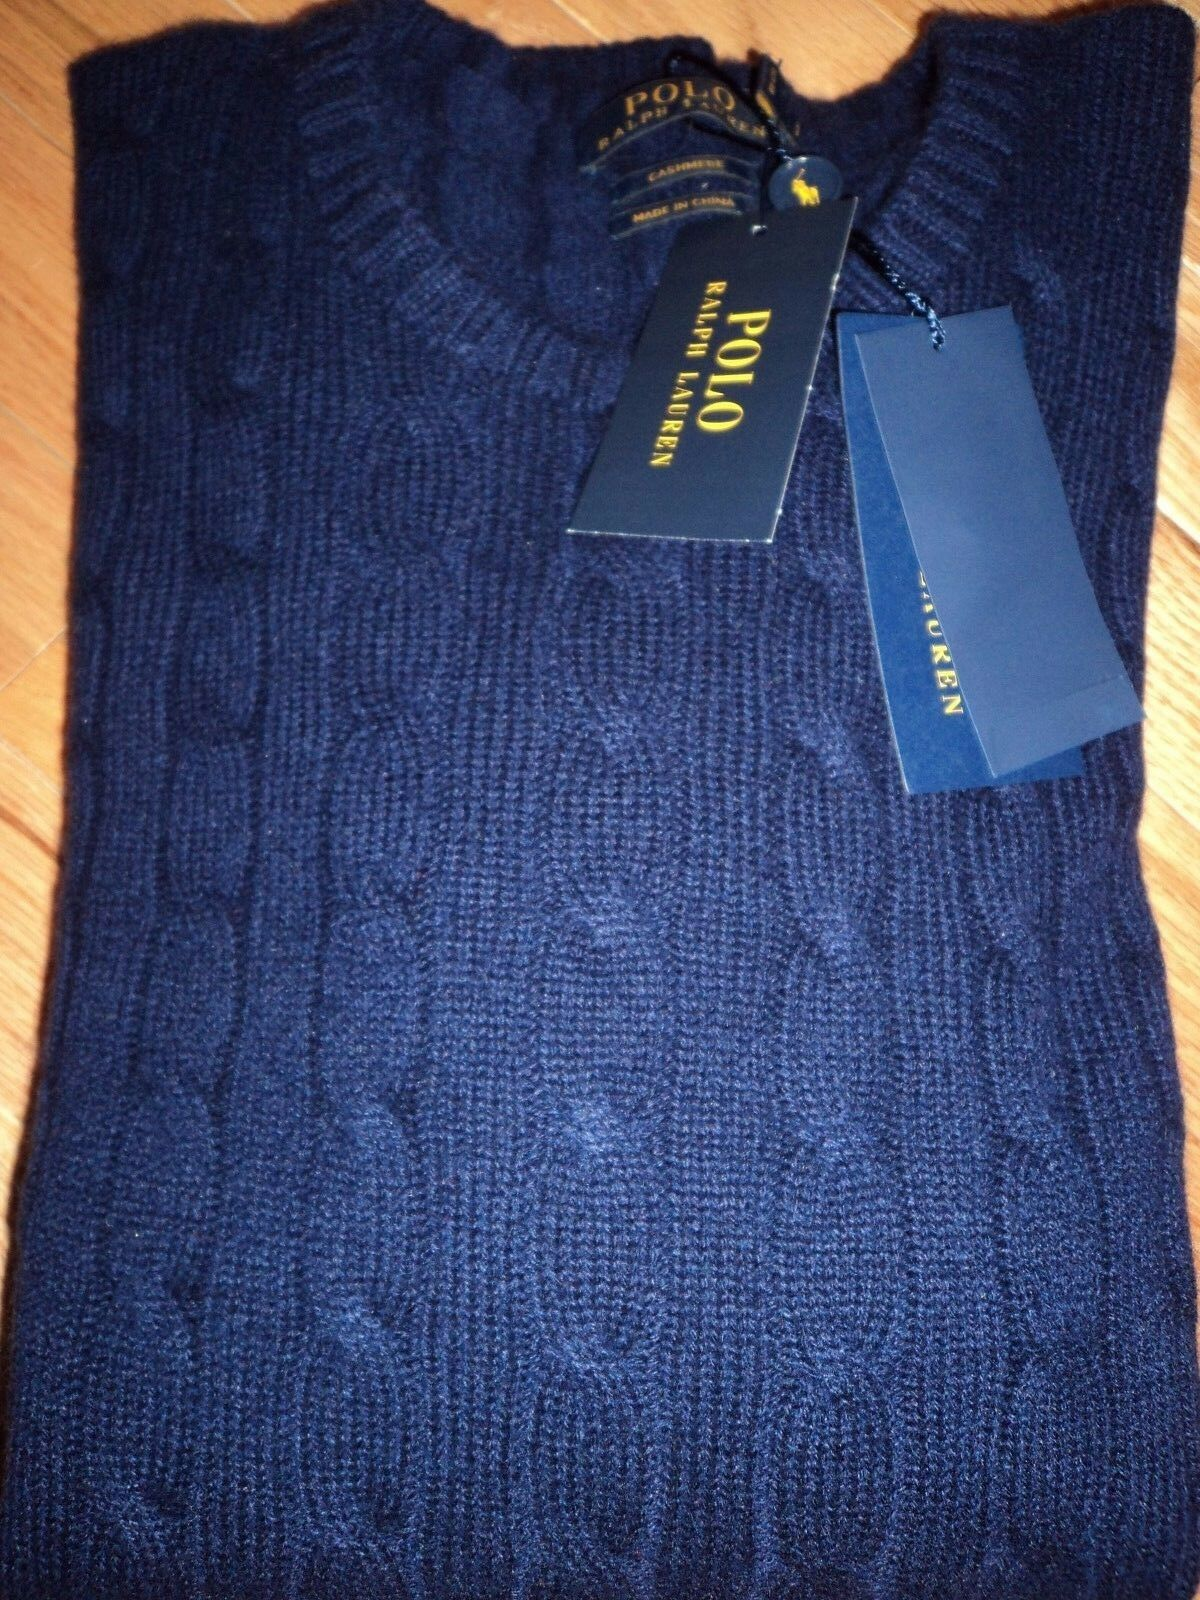 +++nwt 398 Polo Ralph Lauren 100% Cashmere Sweater sz M+++